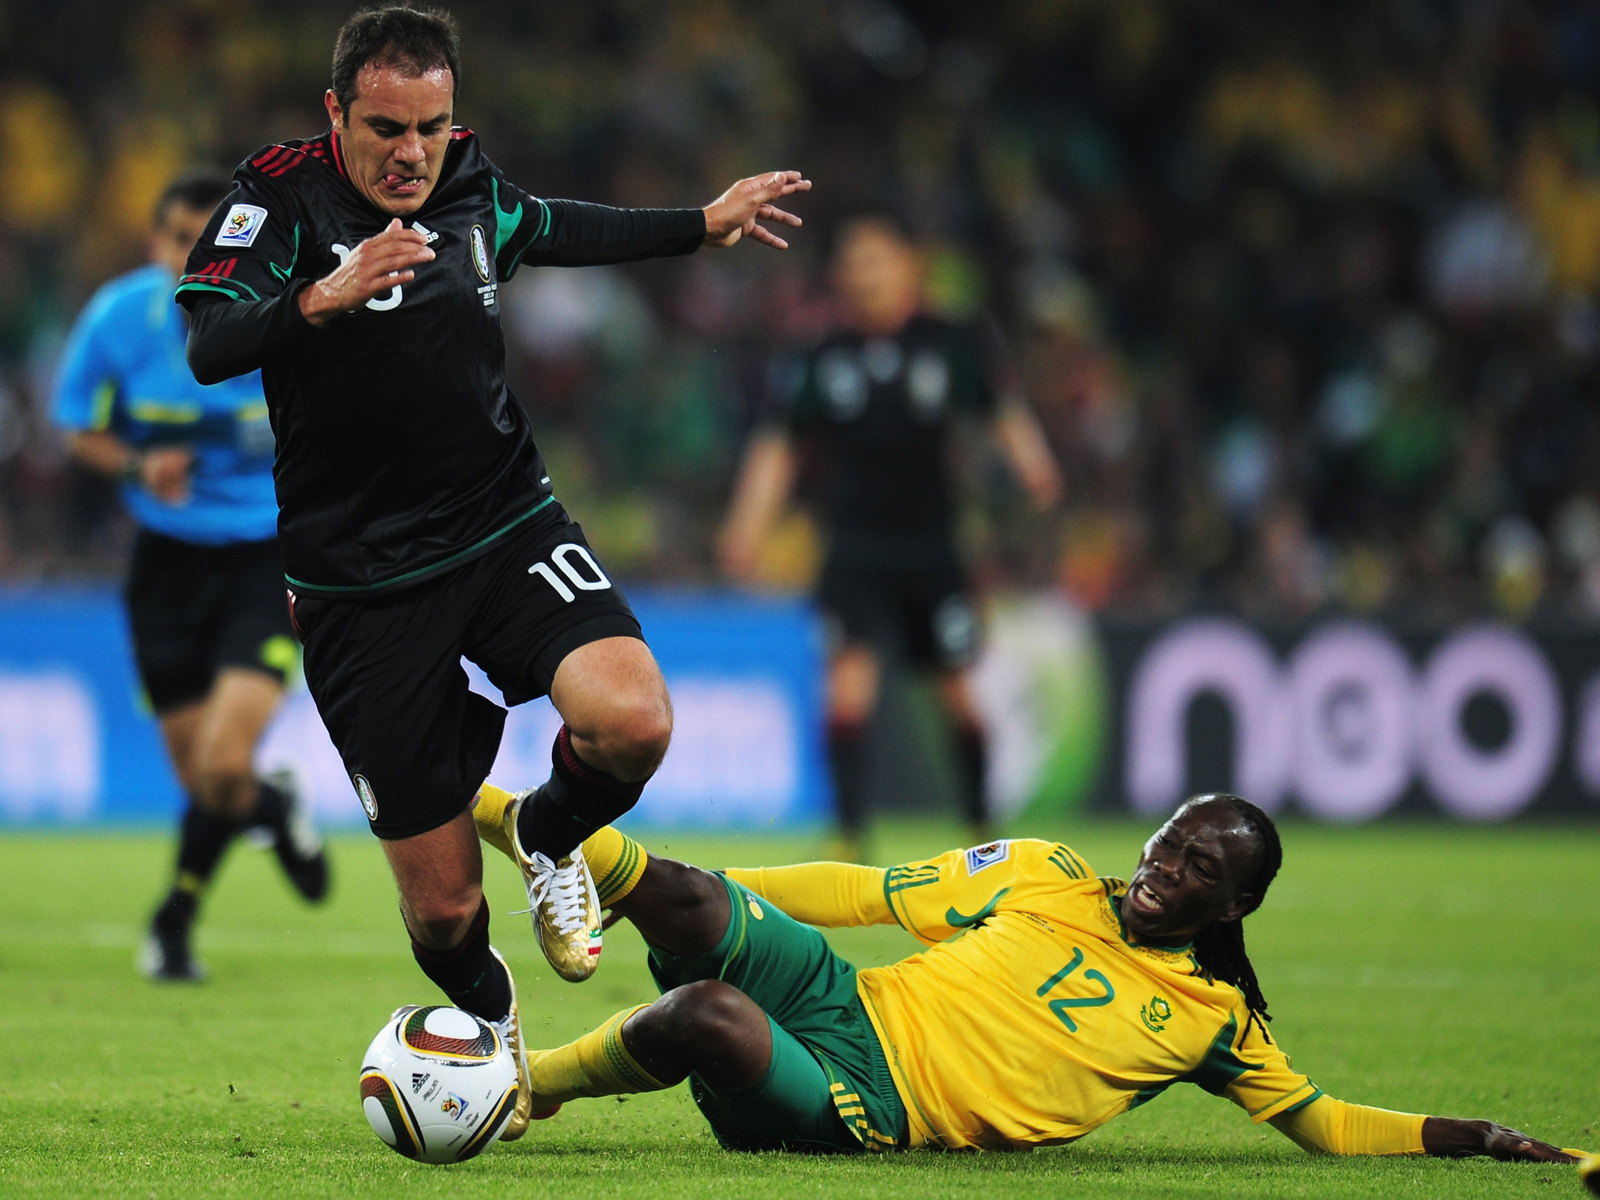 Blanco dribbles against host South Africa in the opening match of the 2010 FIFA World Cup.